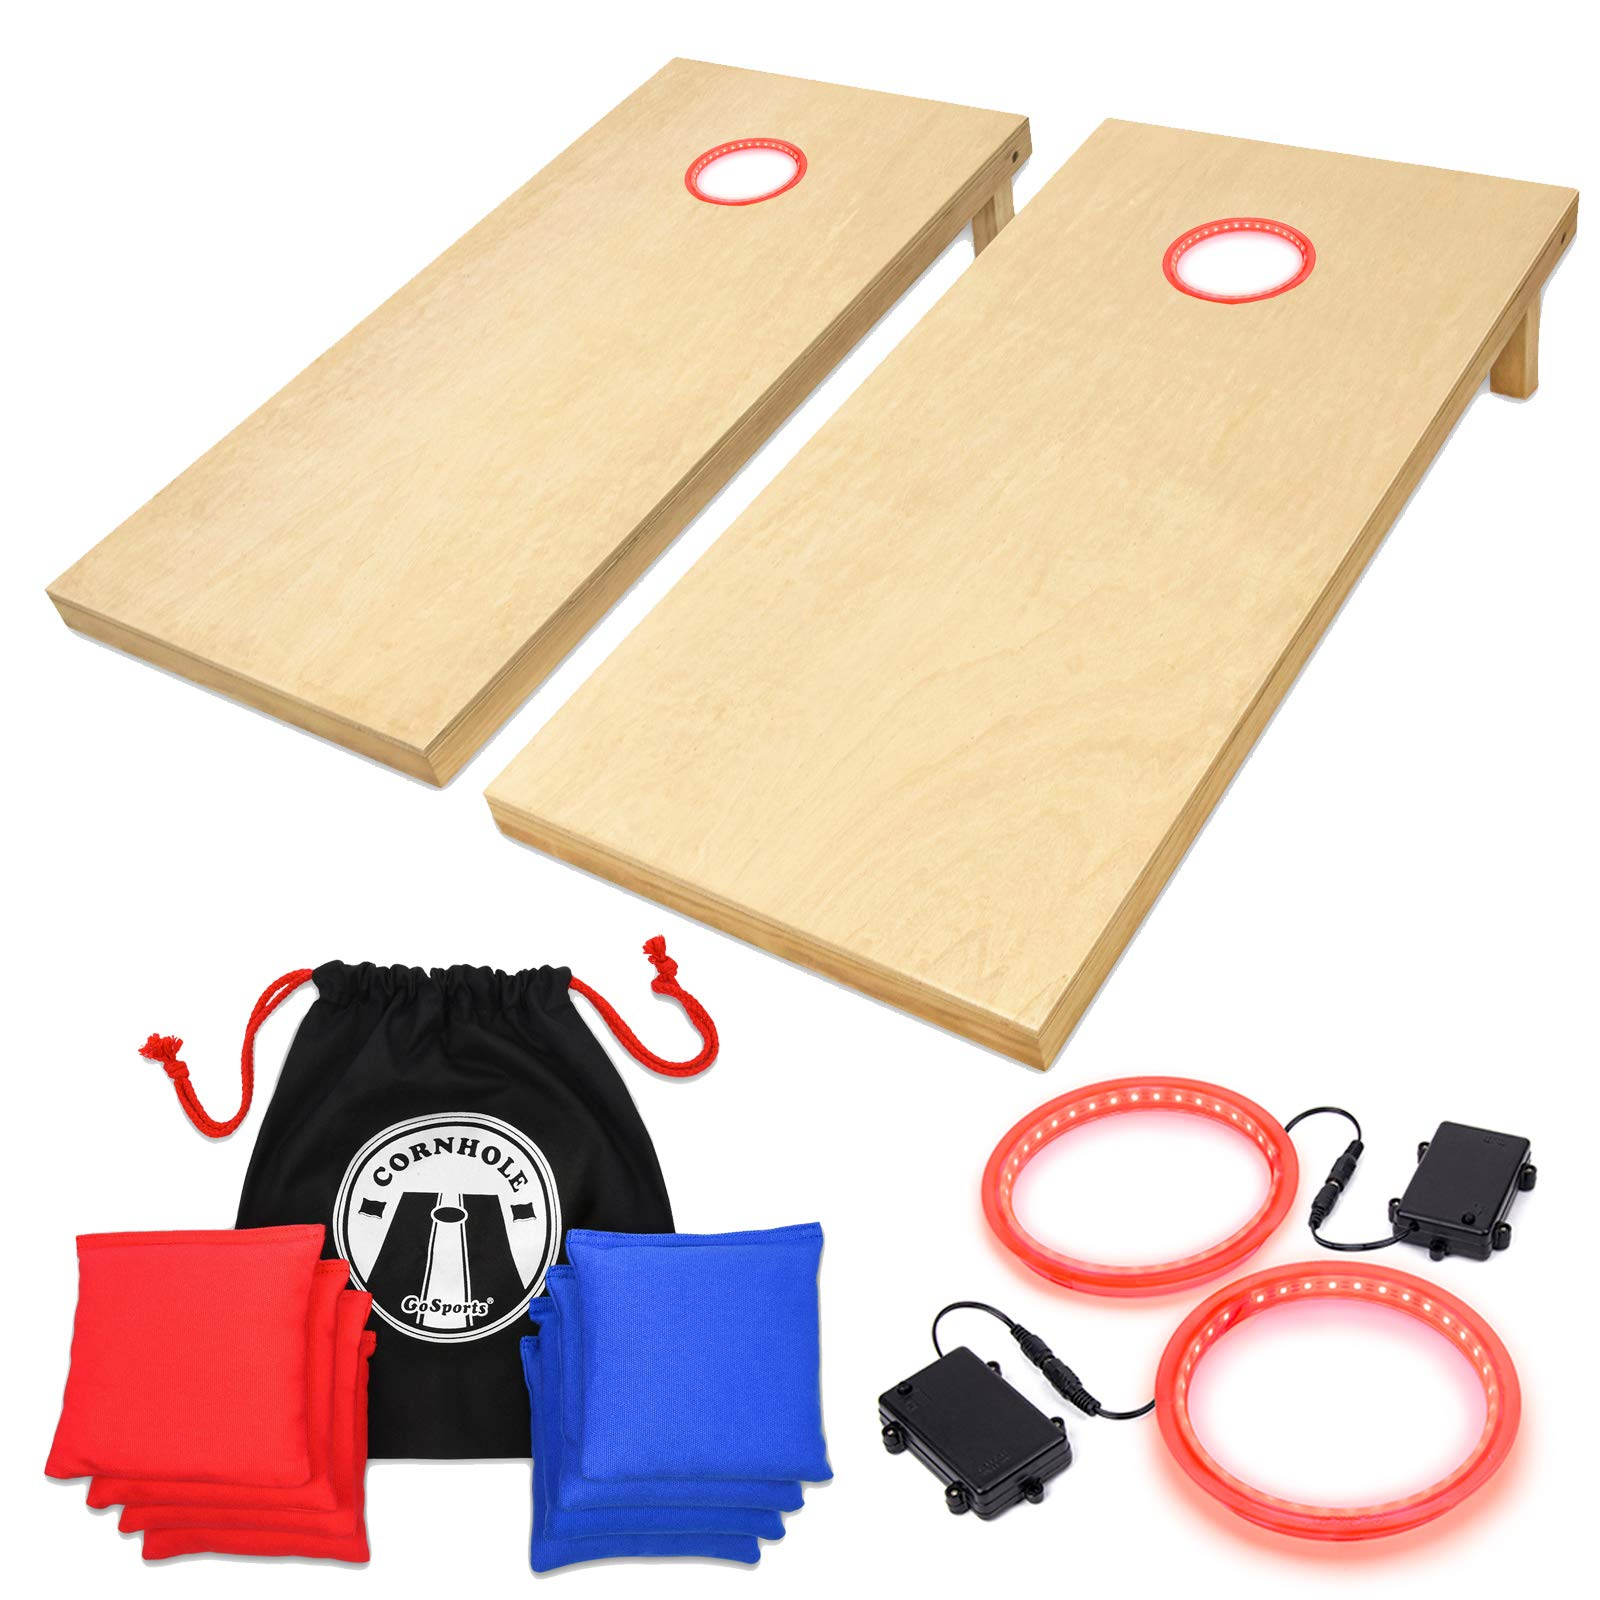 GoSports 4' x 2' Wooden Cornhole Set with Red LED Rings